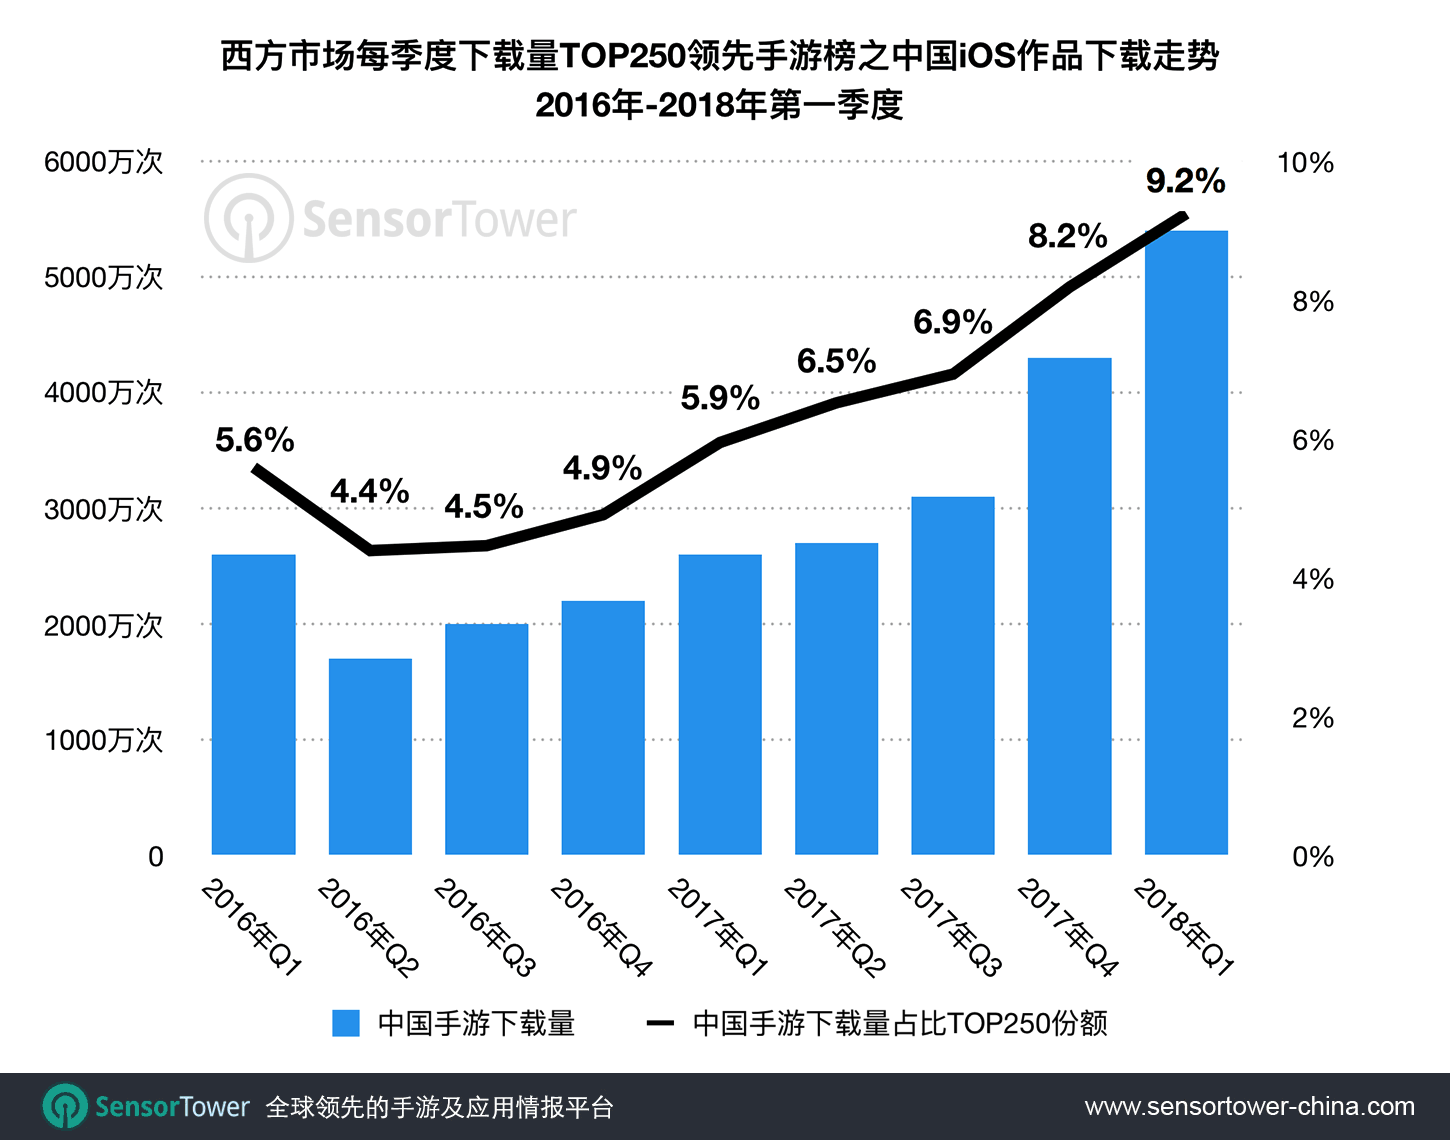 Downloads for Chinese-Made iOS Games within Western Markets' Quarterly Top 250 Titles by Installs  - ios installs for cn games within western markets quarterly top titles - 中国手游出海西方:2018年第一季度下载吸金量及市场份额创新高